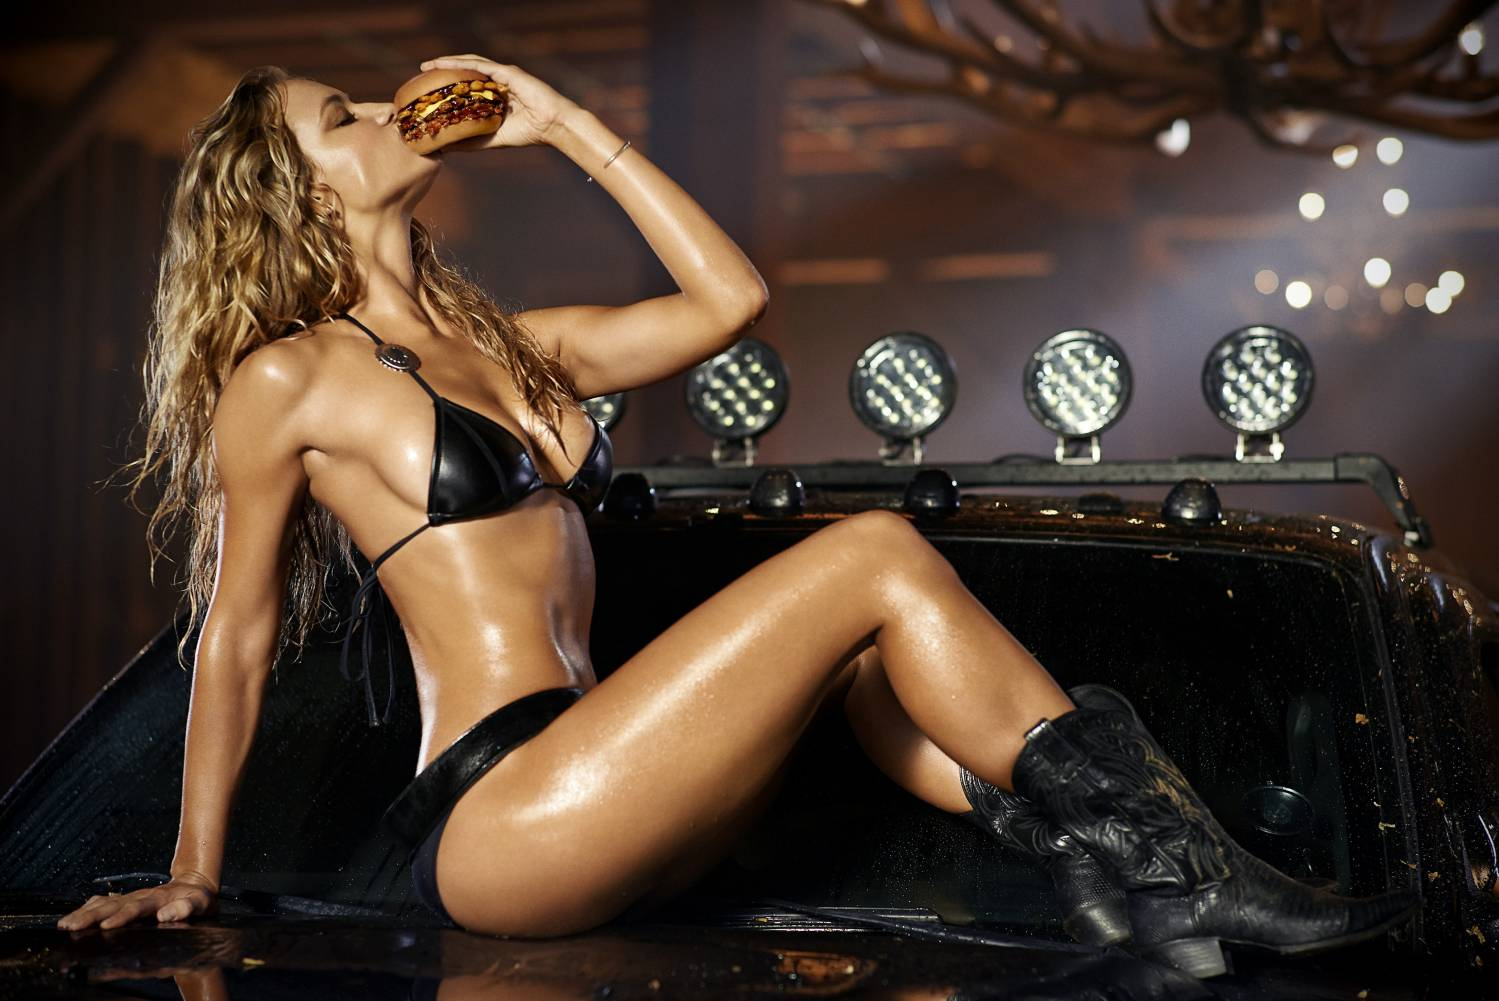 Музыка из рекламы Carls Jr. - I Love Texas  (Hannah Ferguson и Paris Hilton)